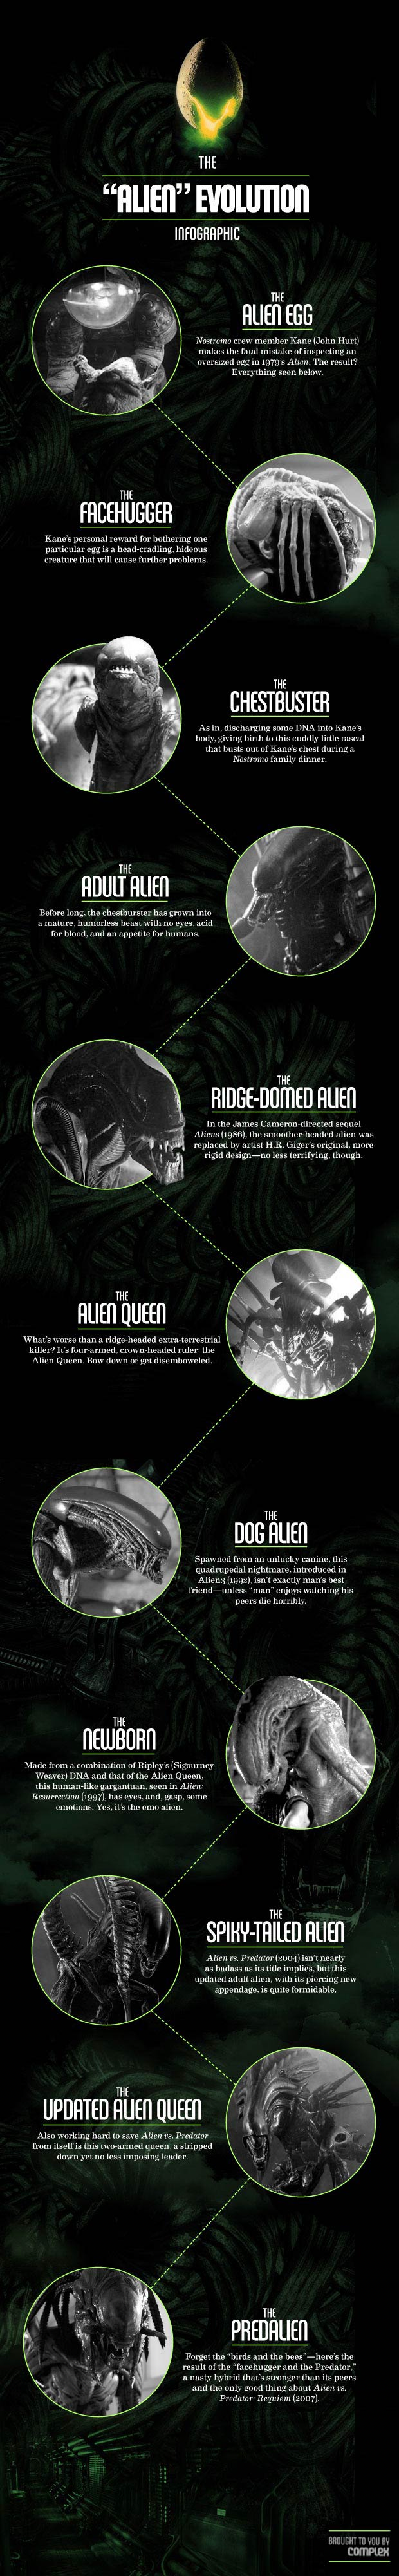 The-Alien-Evolution-infographic